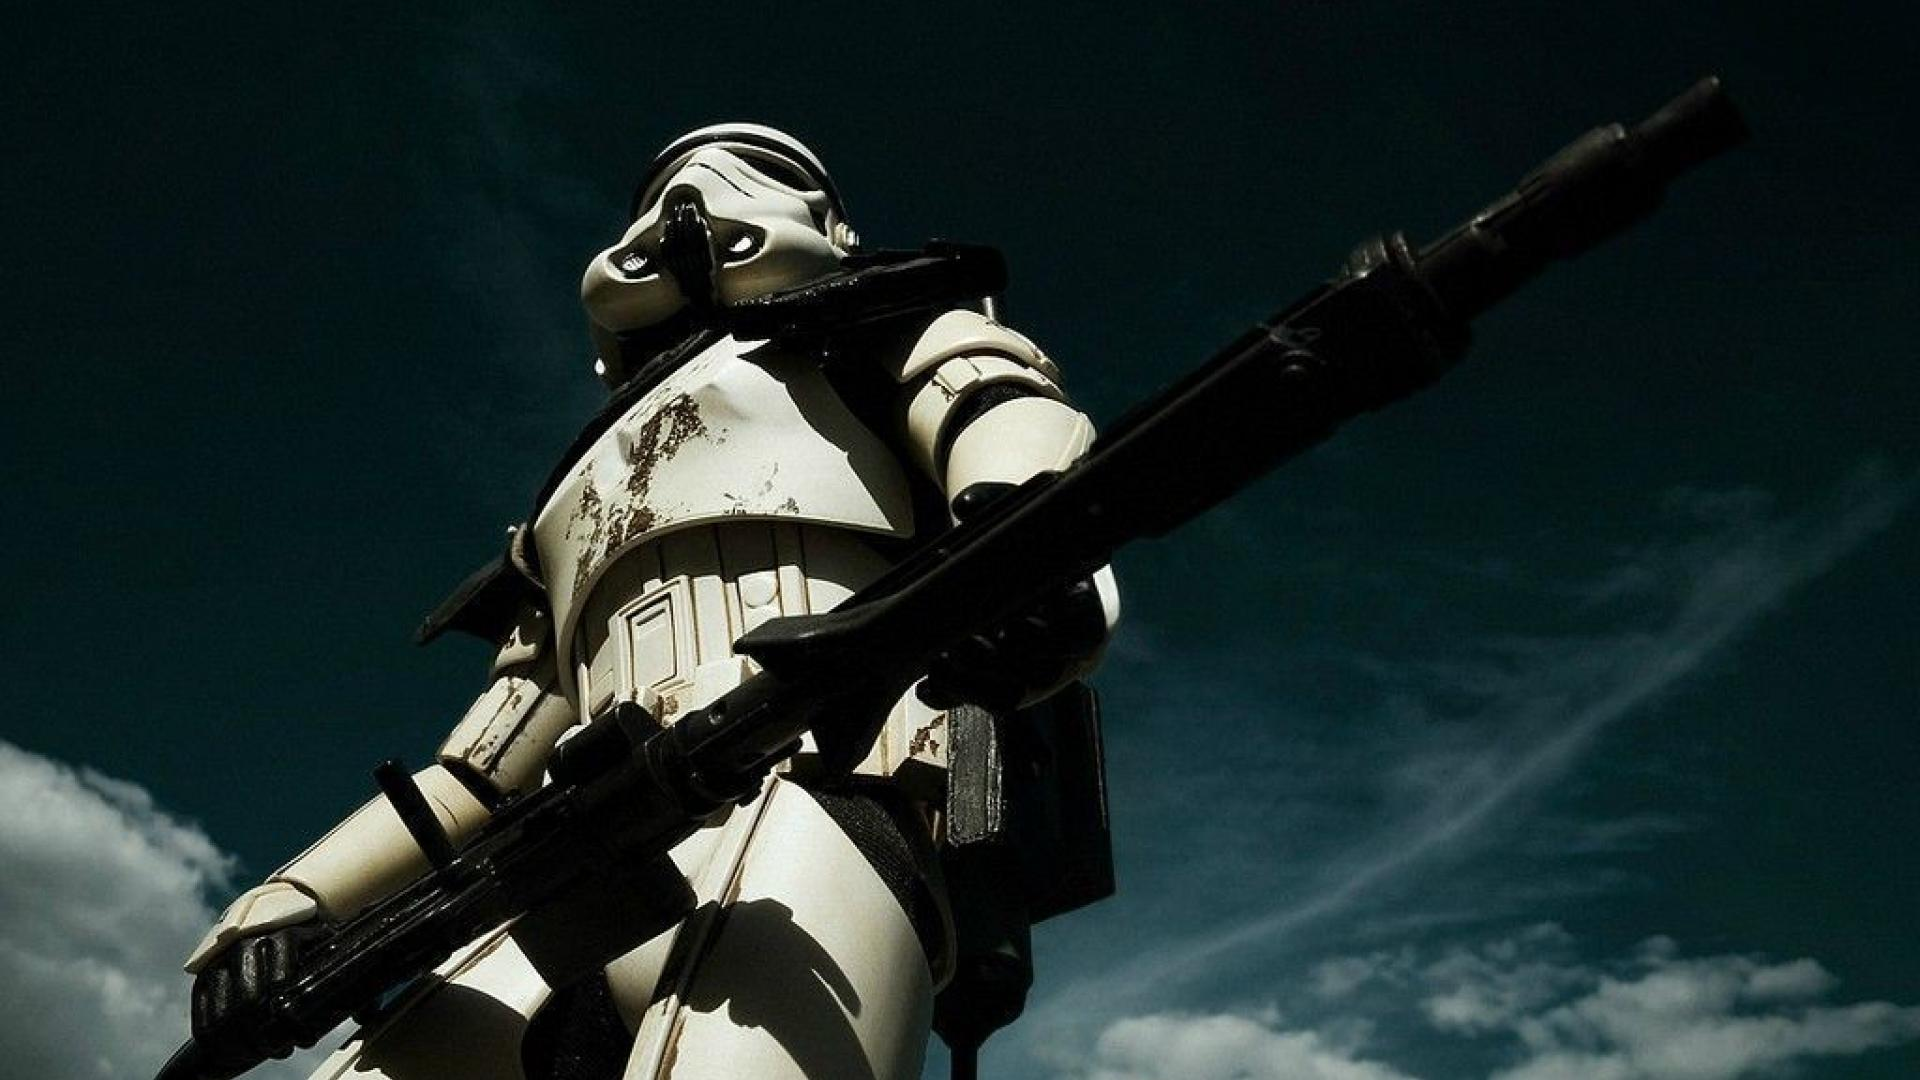 star wars stormtrooper wallpaper hd wallpapersafari